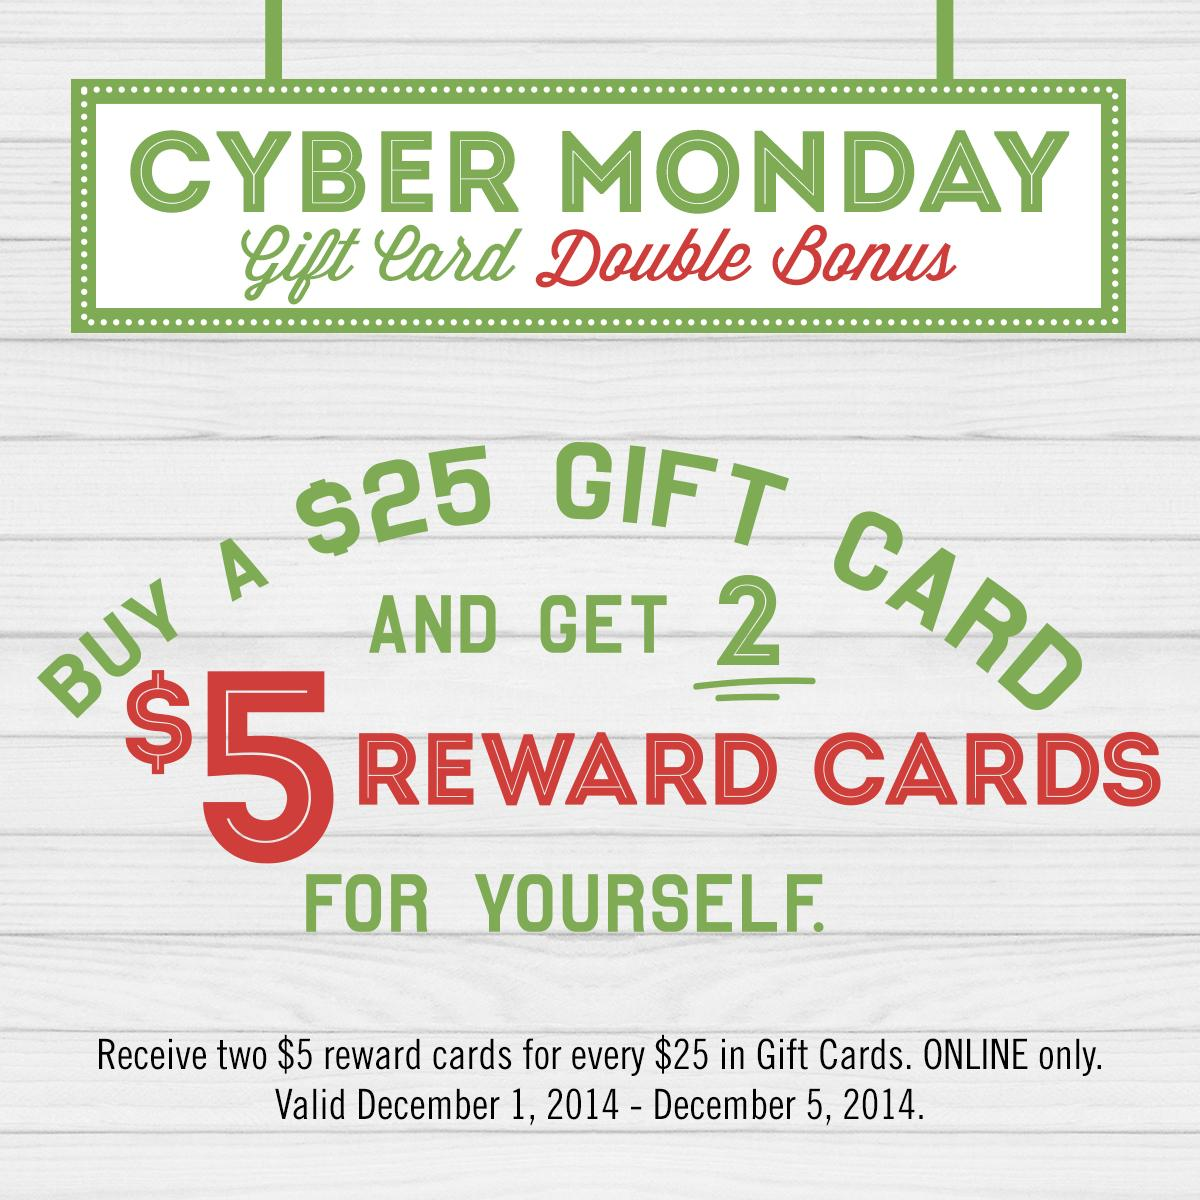 Don't miss out on tomorrow's Cyber Monday deal! http://t.co/n3fe6JgpH6